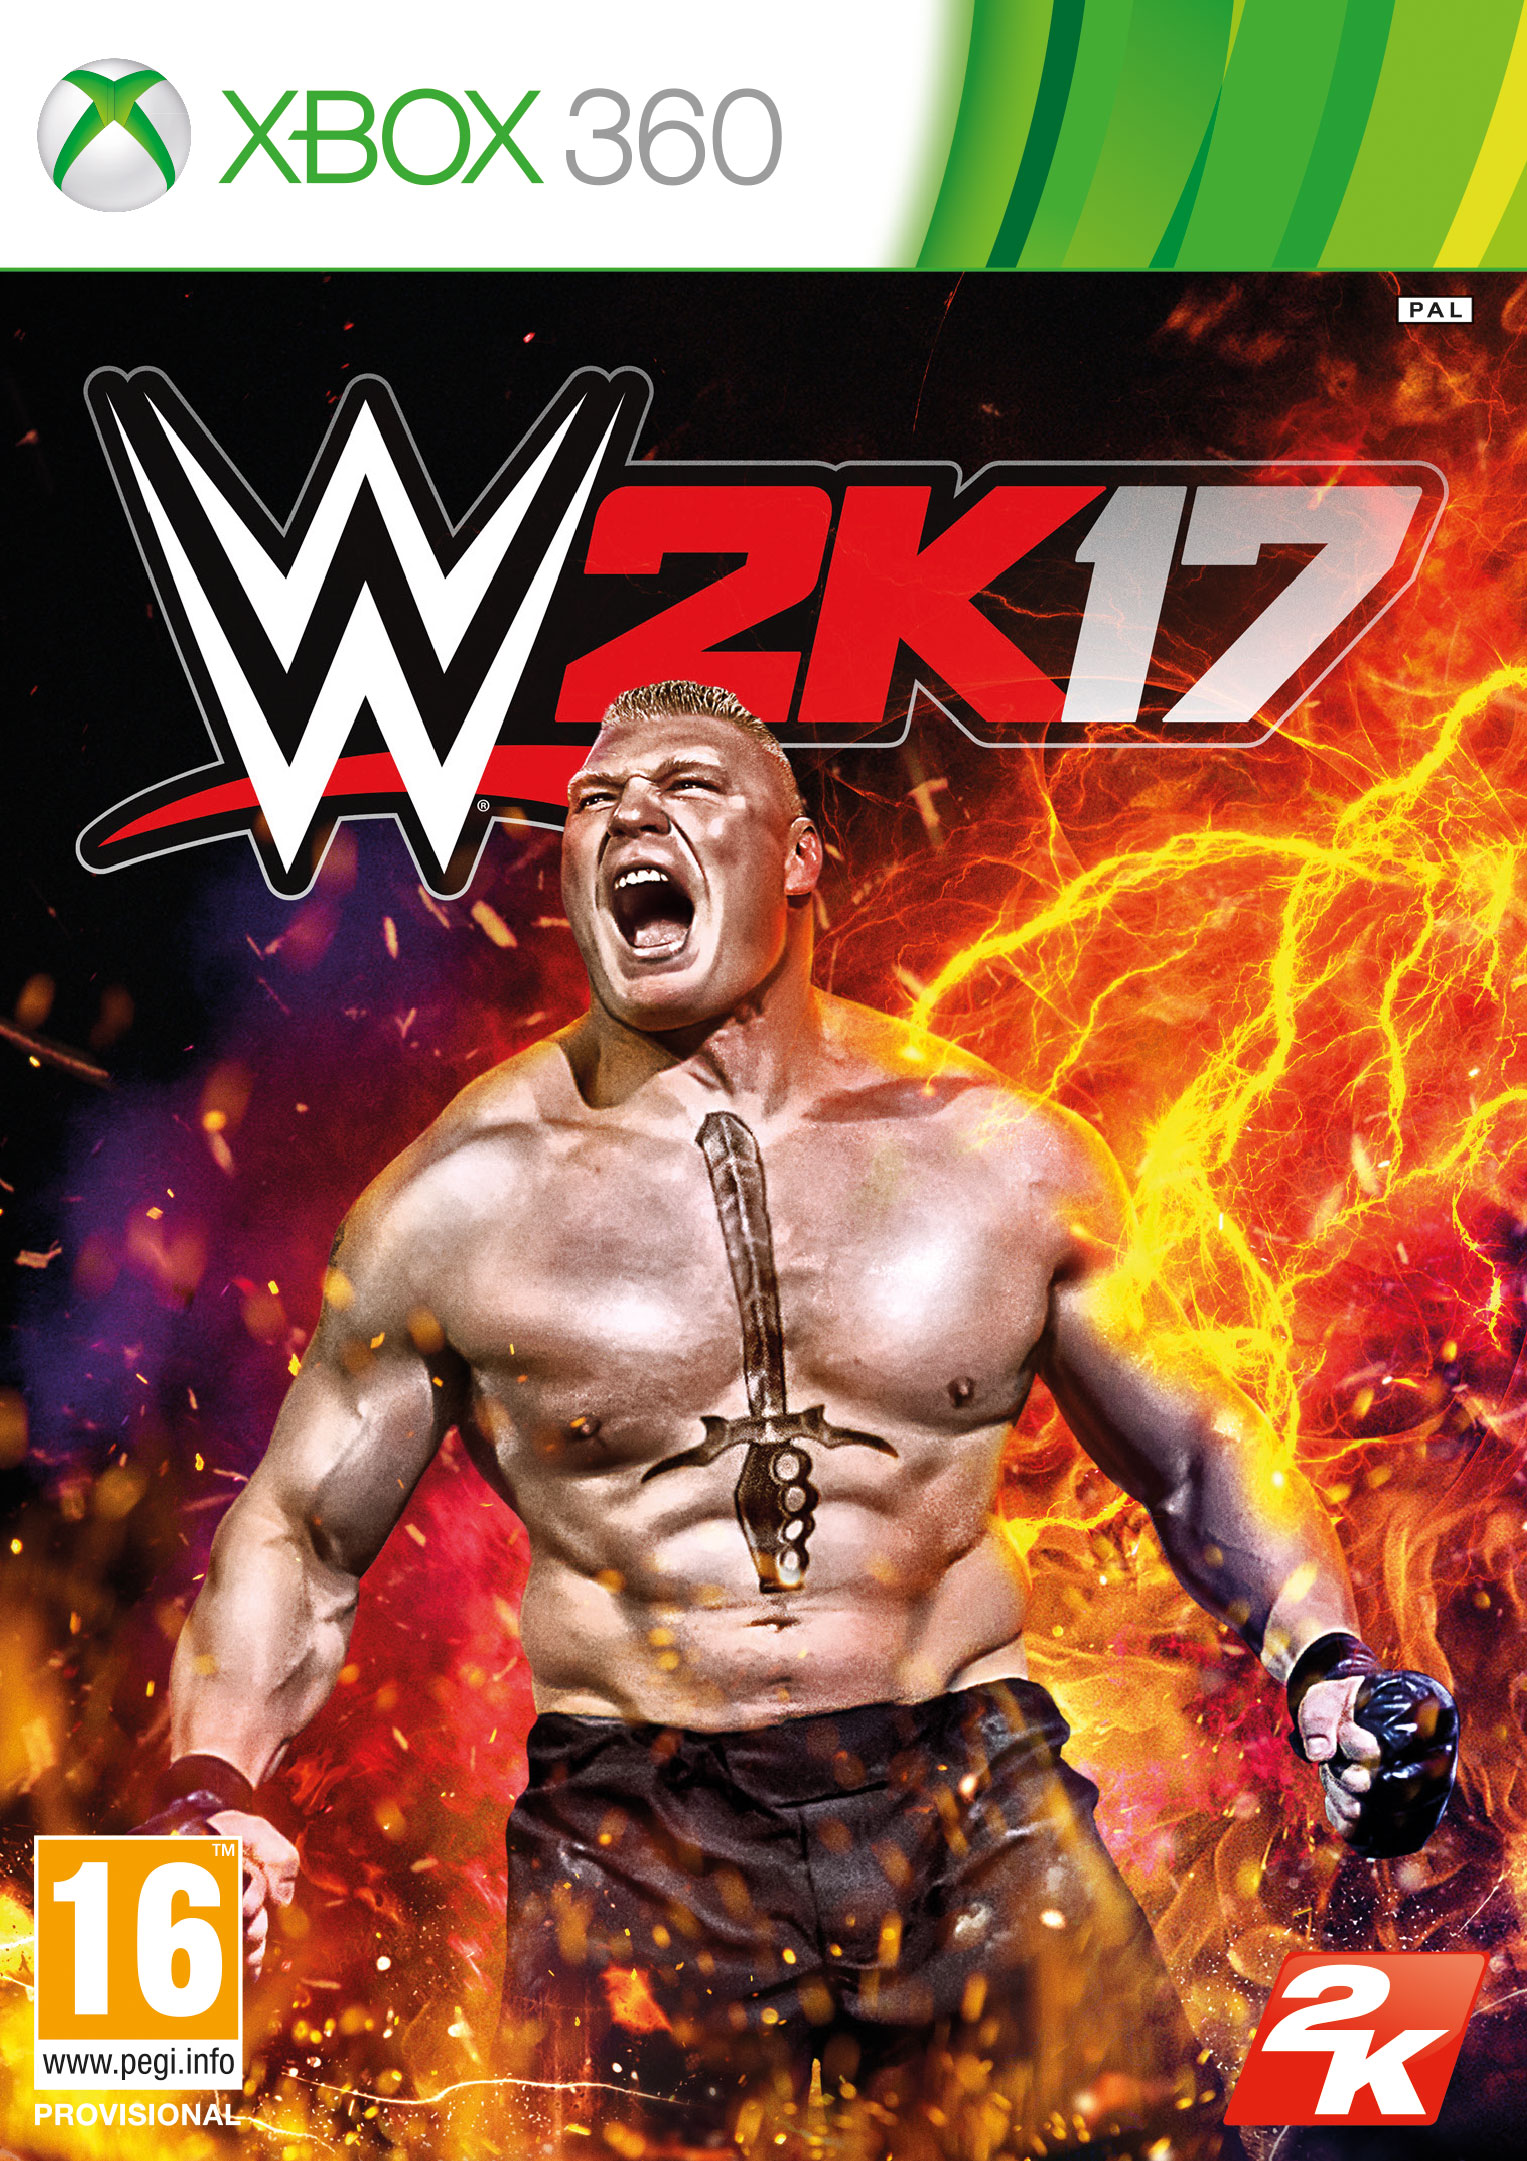 WWE 2K17 Xbox 360 cover featuring Brock Lesnar